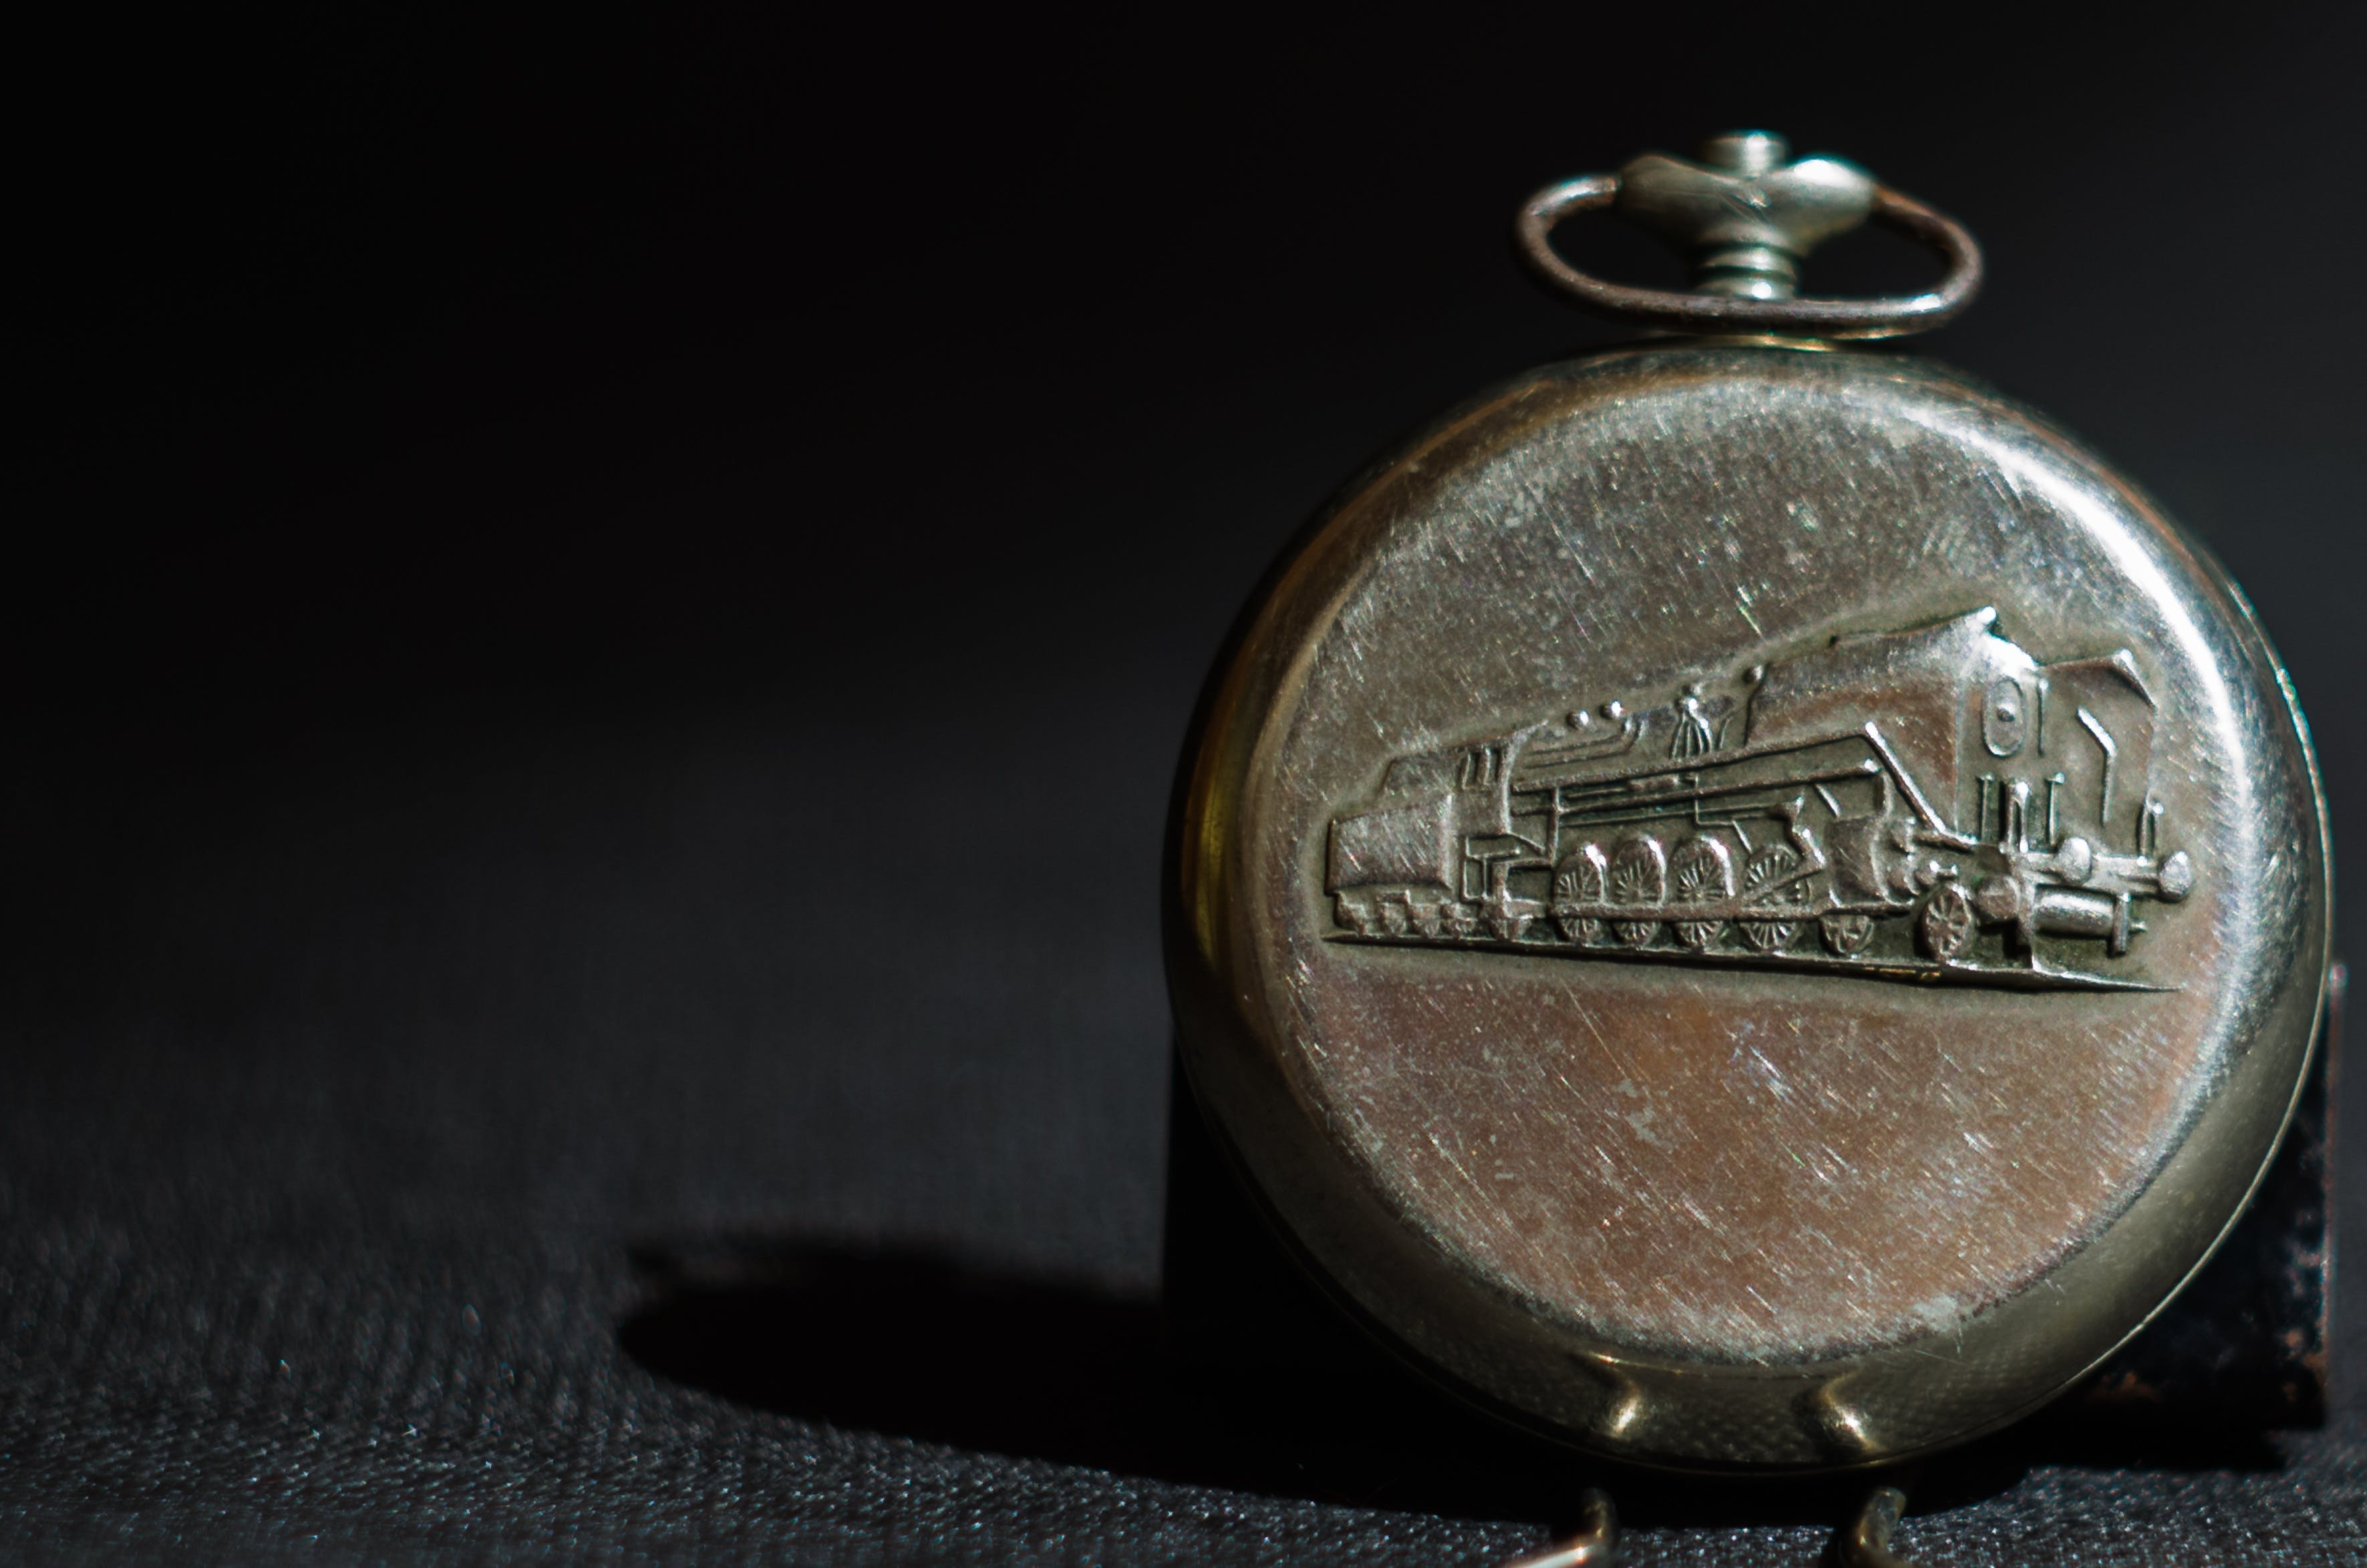 Silver-colored Stopwatch